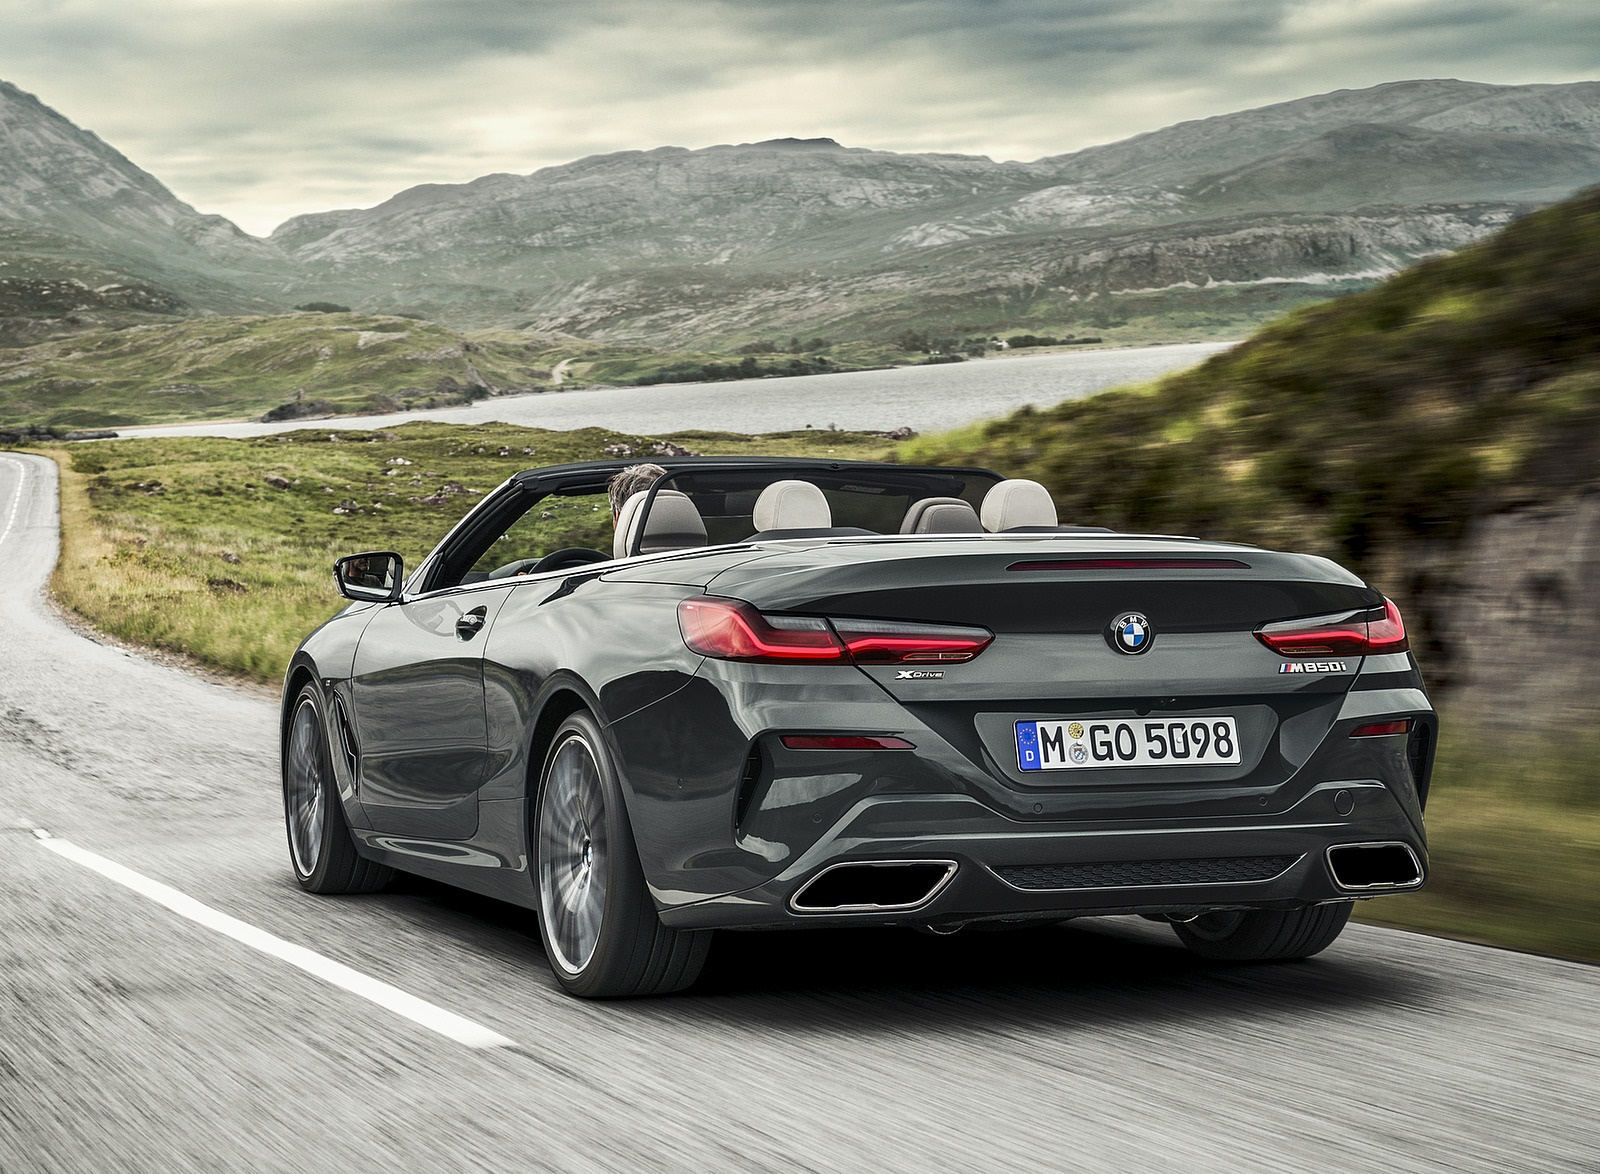 2019 BMW 8 Series Convertible Wallpapers (58+ HD Images